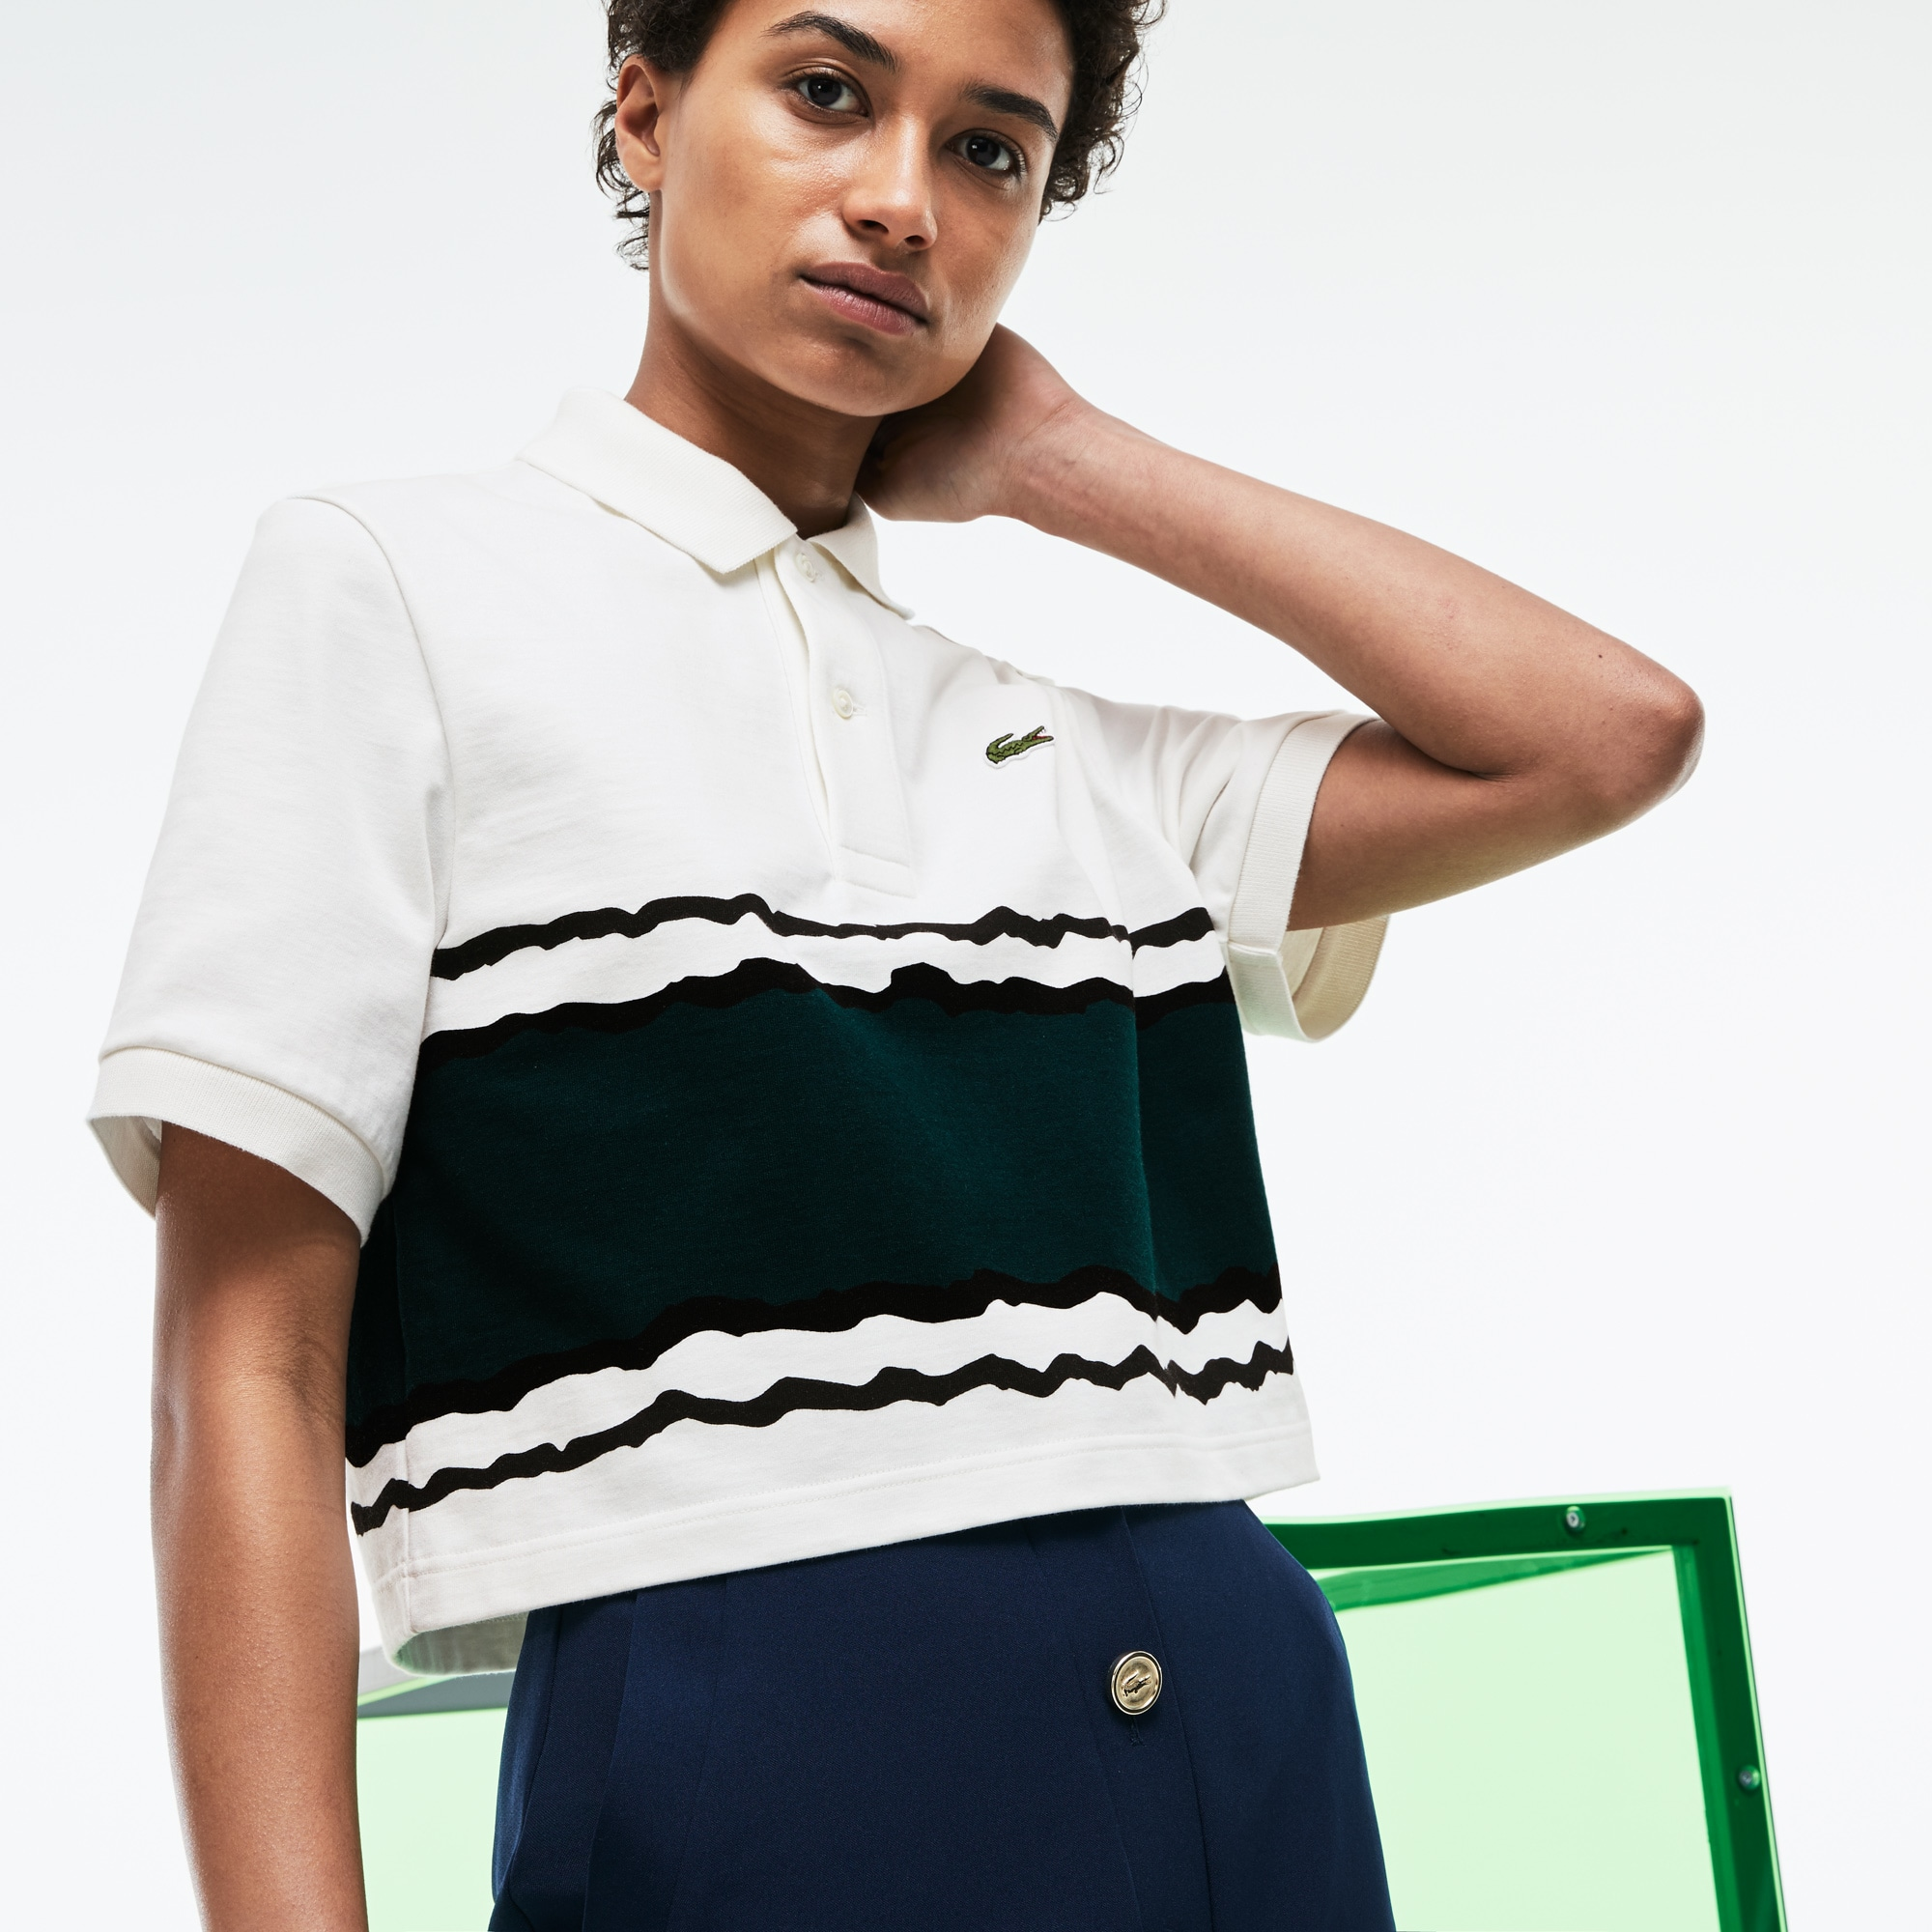 Damen Cropped Fit Poloshirt aus der Fashion Show Kollektion